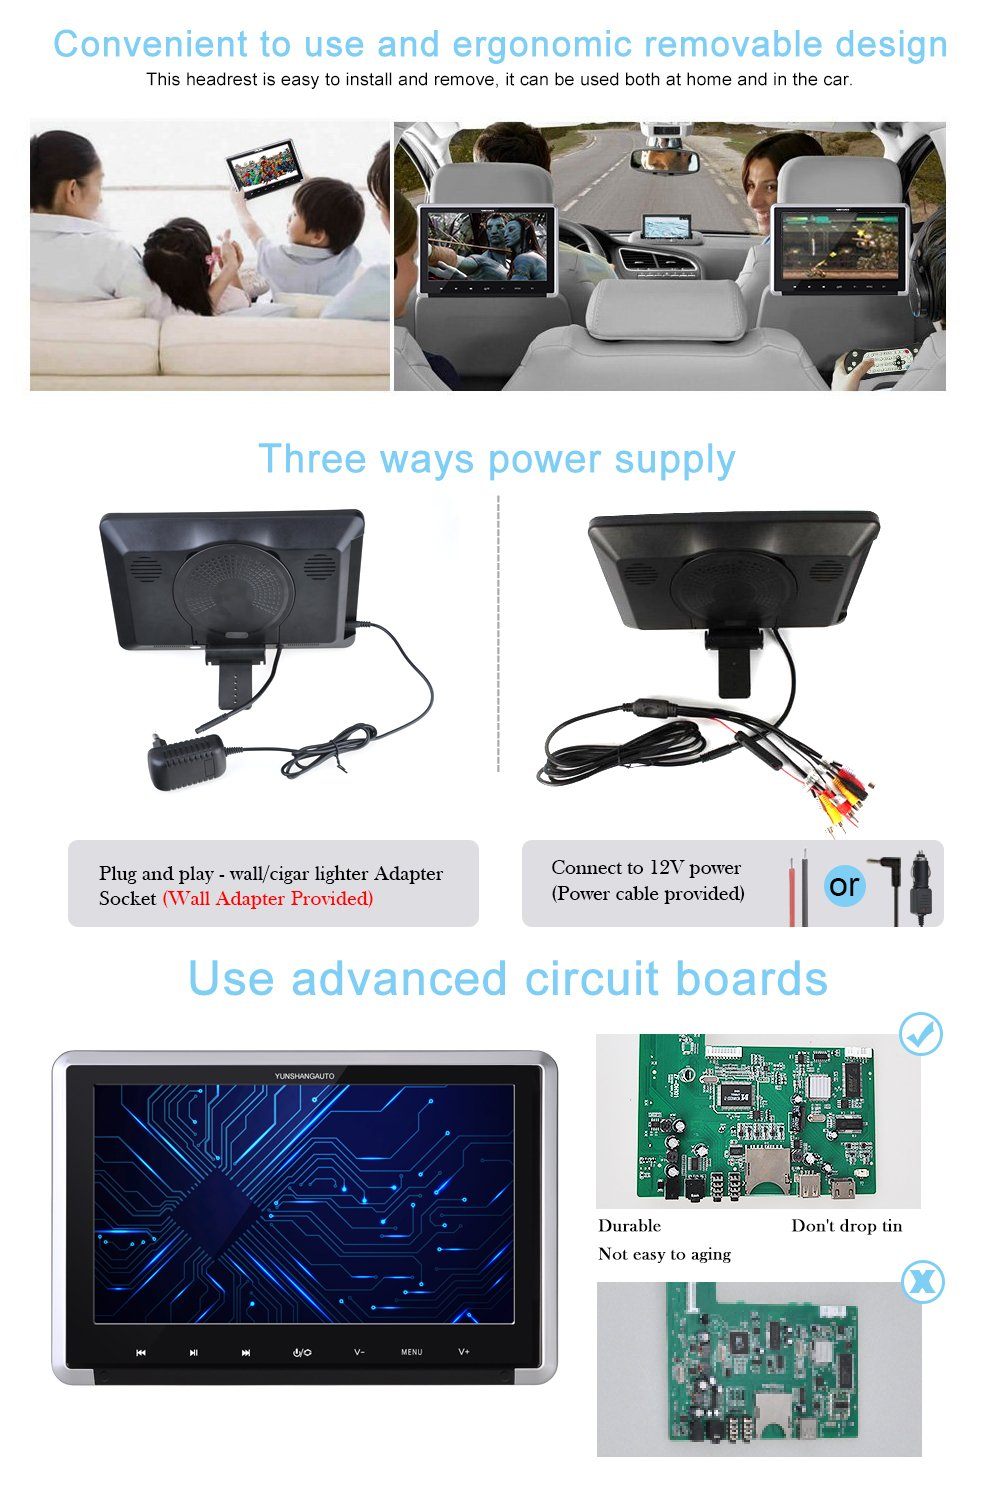 Yunshangauto 101 Inch Hd 1080p Tft Lcd Screen First To Use Removable Printed Circuit Boards Designed For Quick In Carheadrest Dvd Player With Hdmi Port And Remote Control Ir Headphone Am48dvd Car